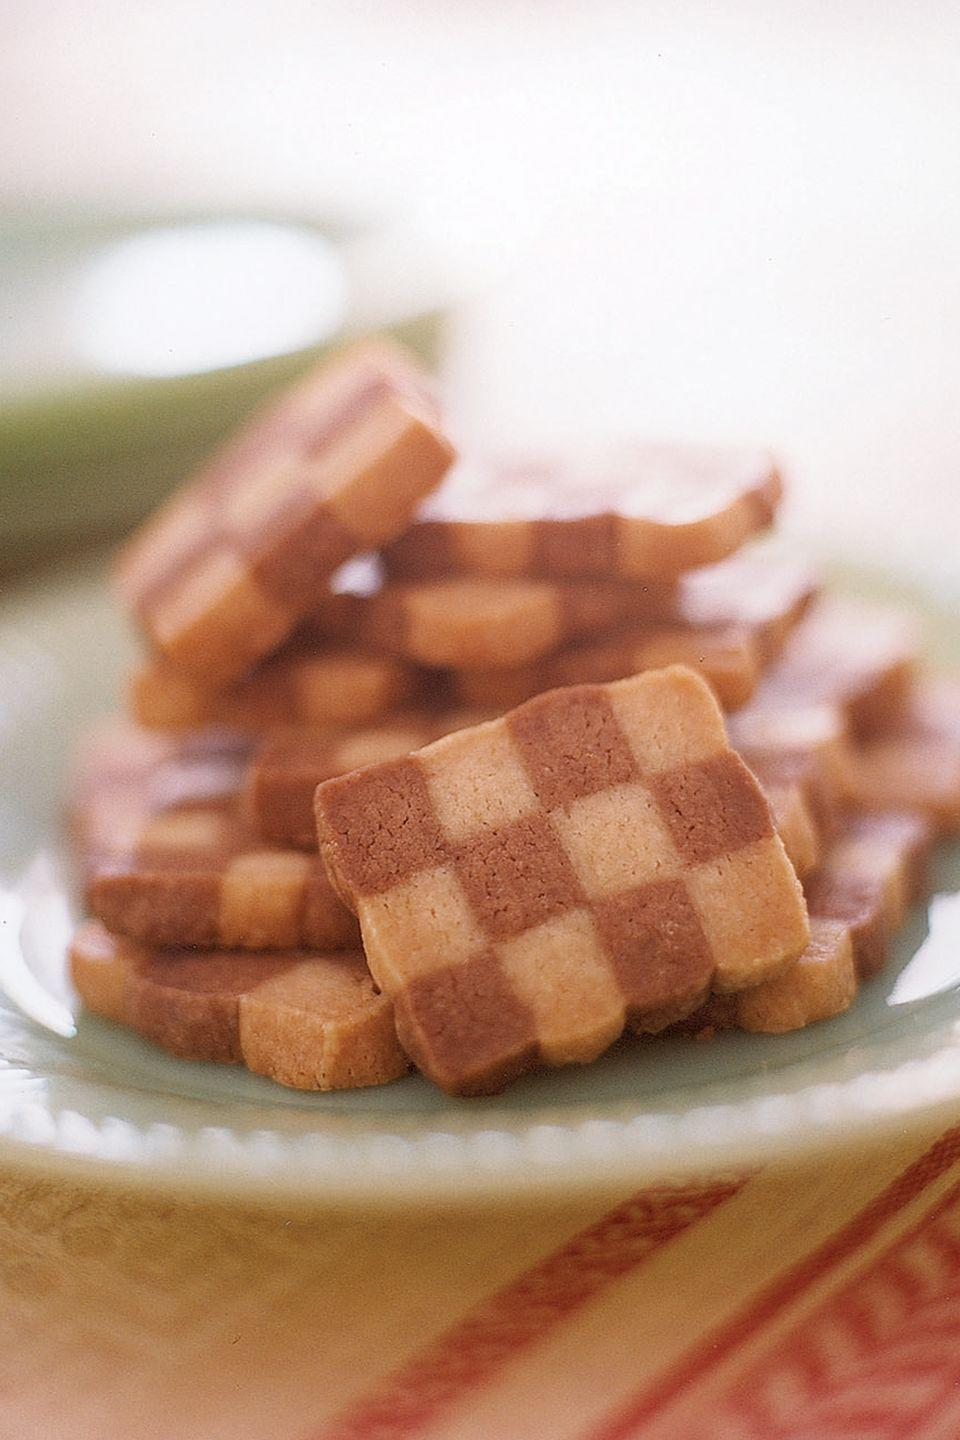 """<p>To create marbled cookies, shape vanilla and chocolate dough into ropes. Twist together for a swirled effect. Chill, slice, and bake.</p><p><strong><a href=""""https://www.countryliving.com/food-drinks/recipes/a1428/checkerboard-cookies-3544/"""" rel=""""nofollow noopener"""" target=""""_blank"""" data-ylk=""""slk:Get the recipe"""" class=""""link rapid-noclick-resp"""">Get the recipe</a>.</strong></p>"""